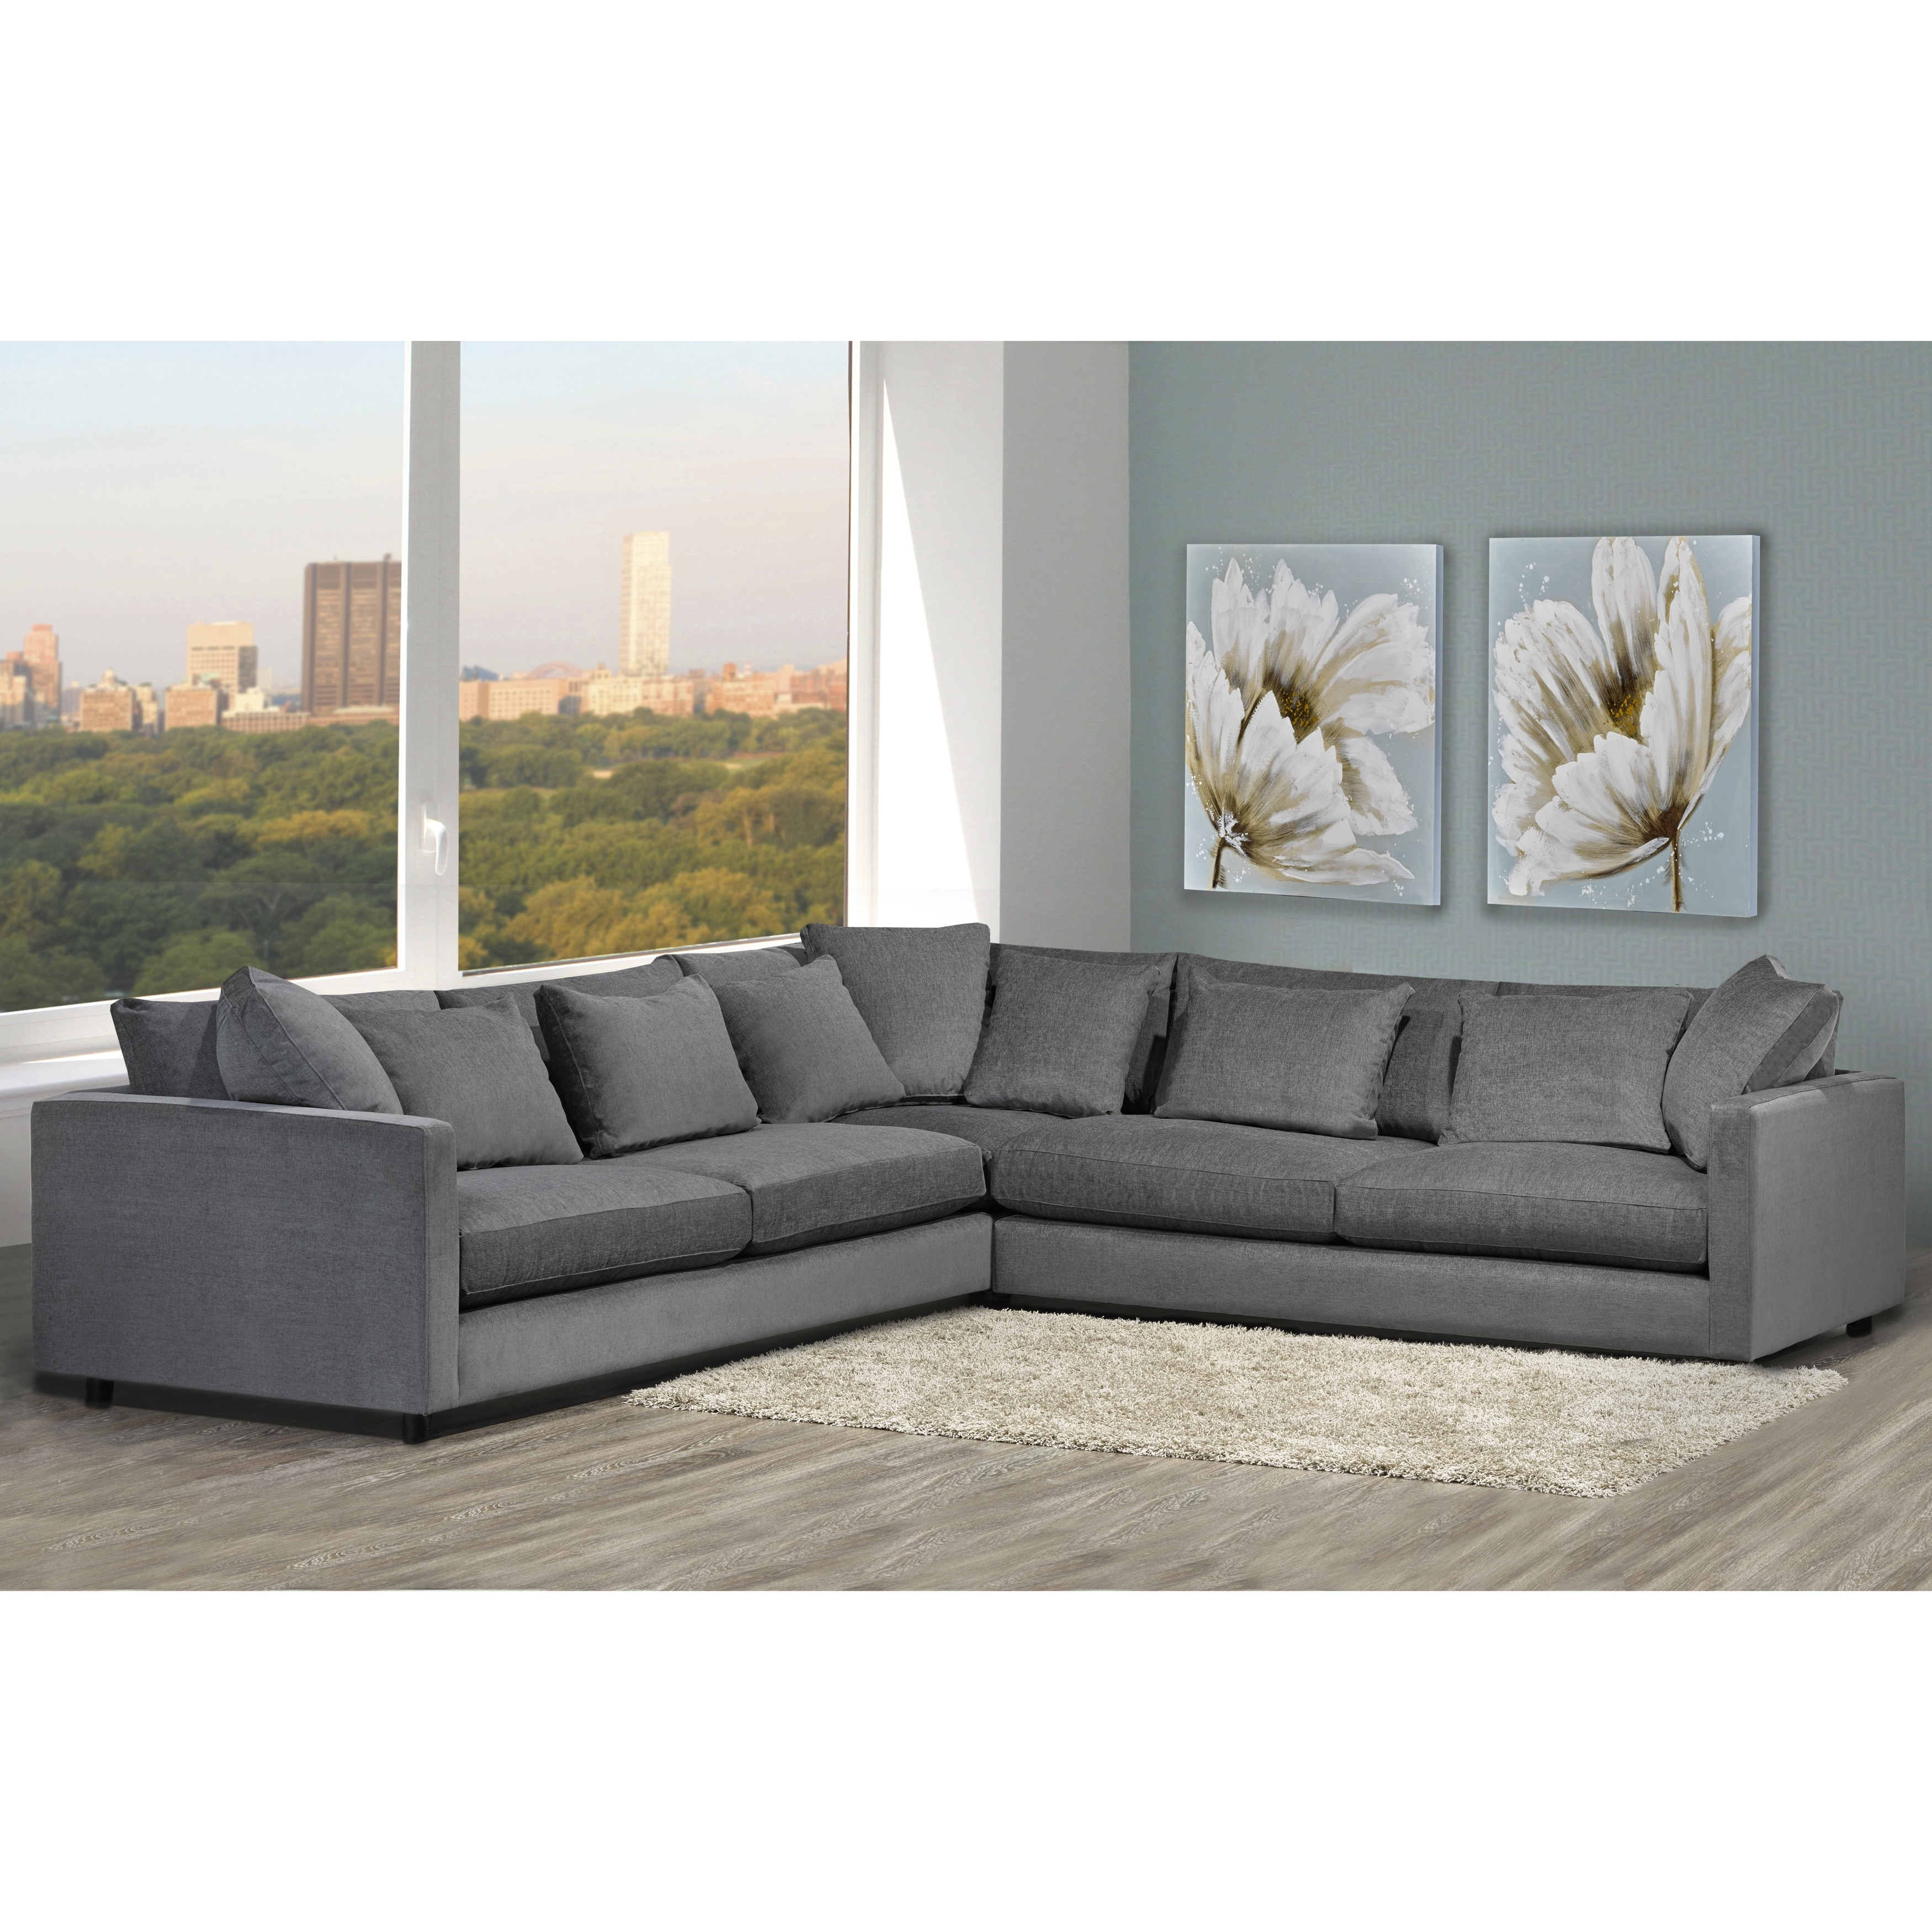 Made To Order Modern Lounge Down Filled Grey Fabric Sectional Sofa In Trendy Down Feather Sectional Sofas (View 15 of 20)